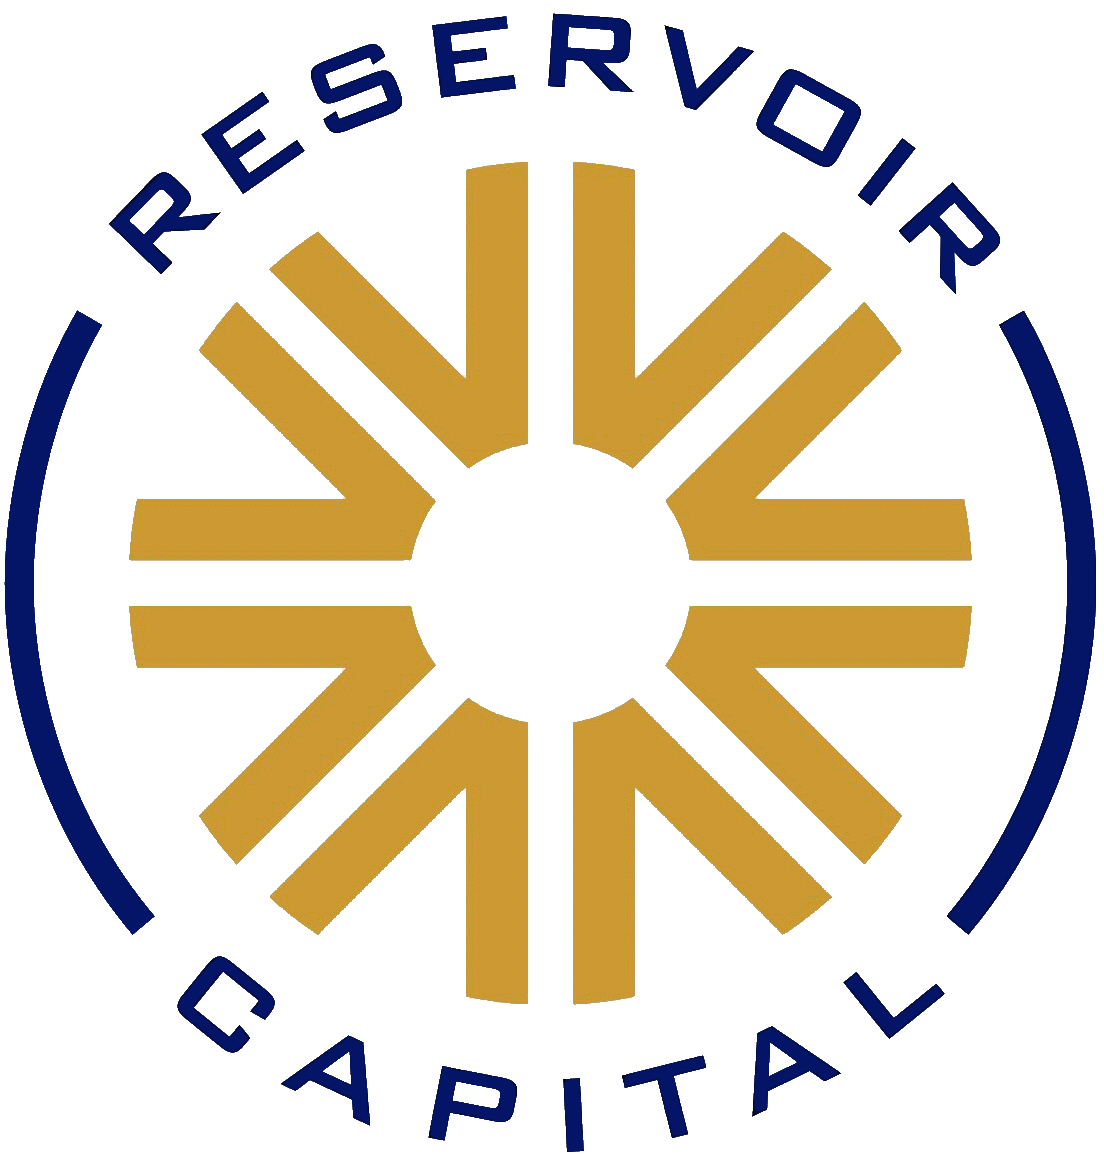 Reservoir Capital Corp. Completes Transaction Securing 100% Ownership in Olocorp Nigeria Ltd. Adding 3